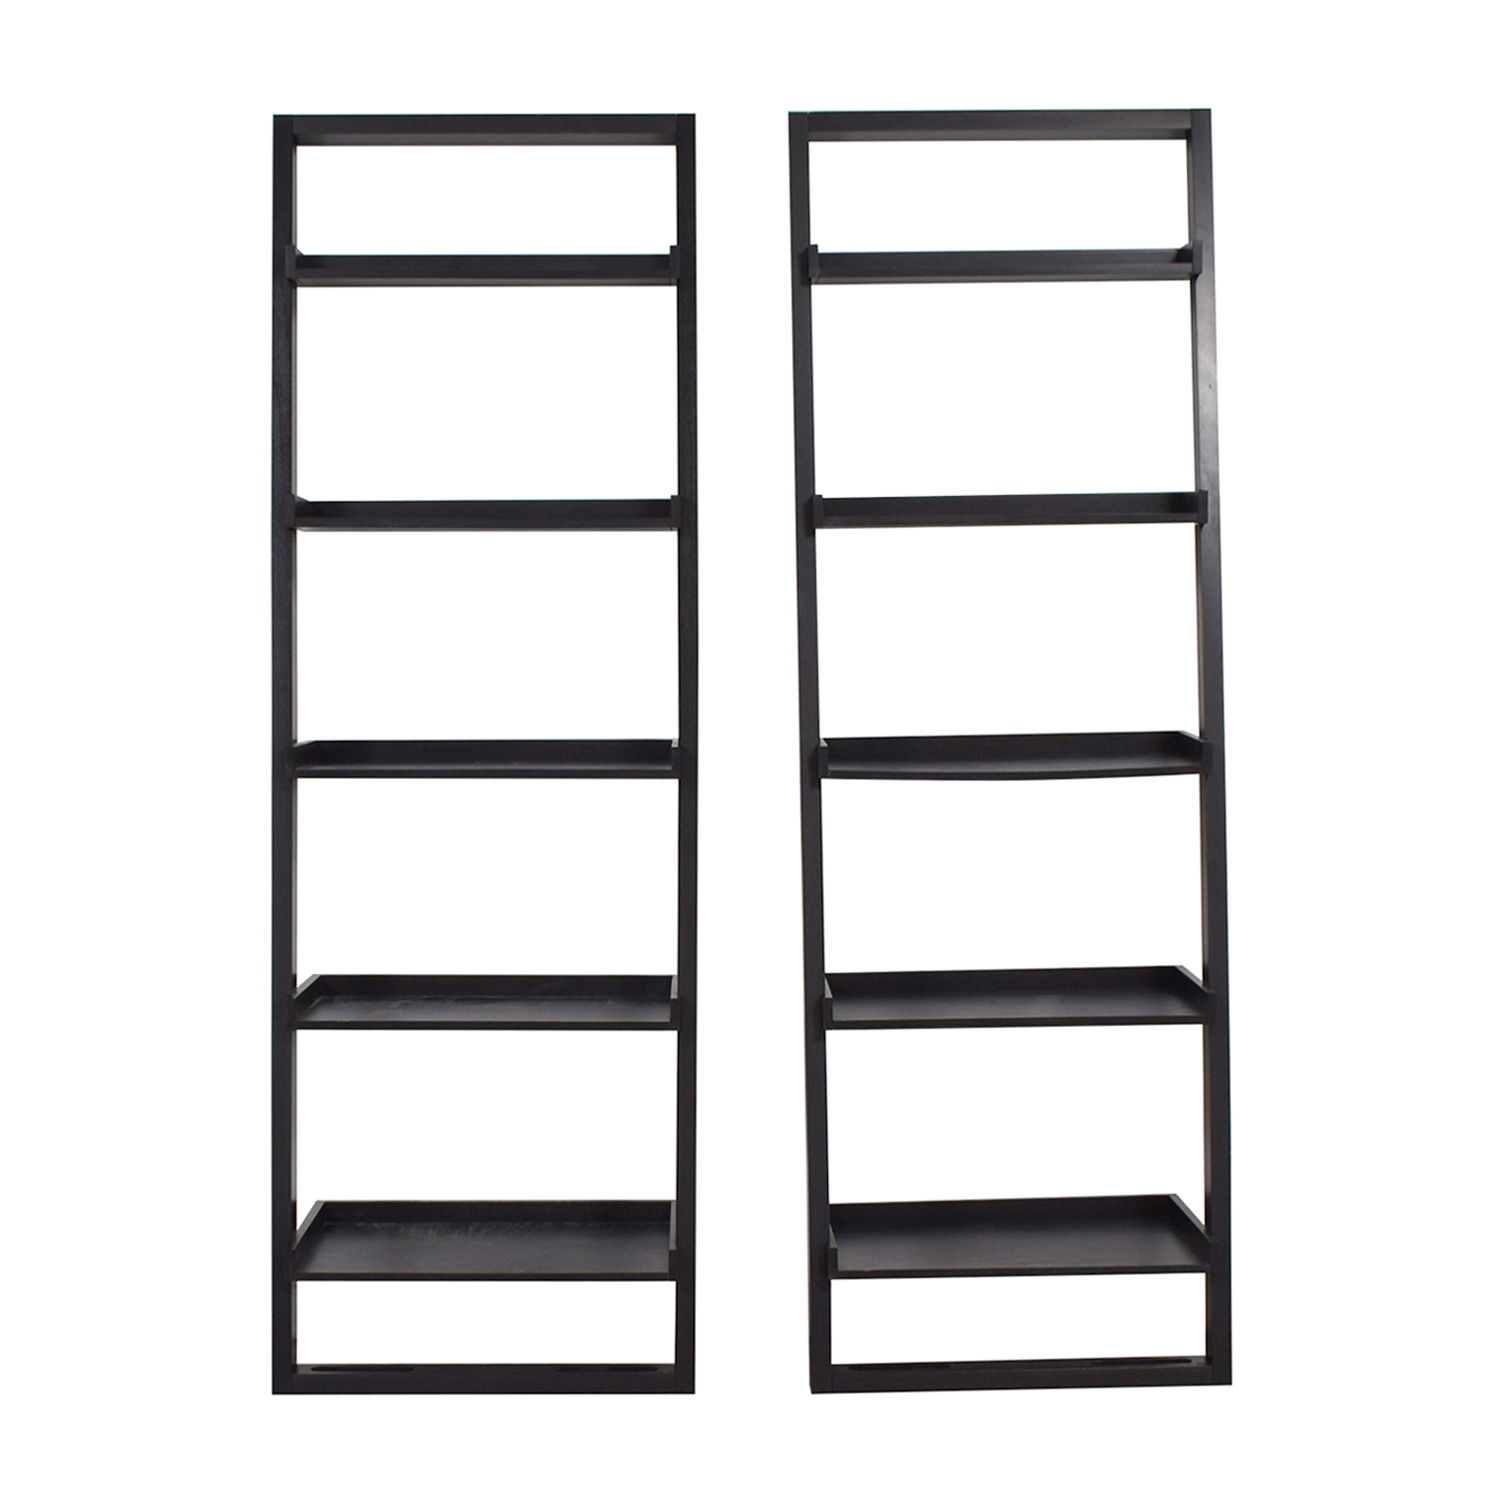 Crate & Barrel Black Leaning Bookshelves Crate & Barrel